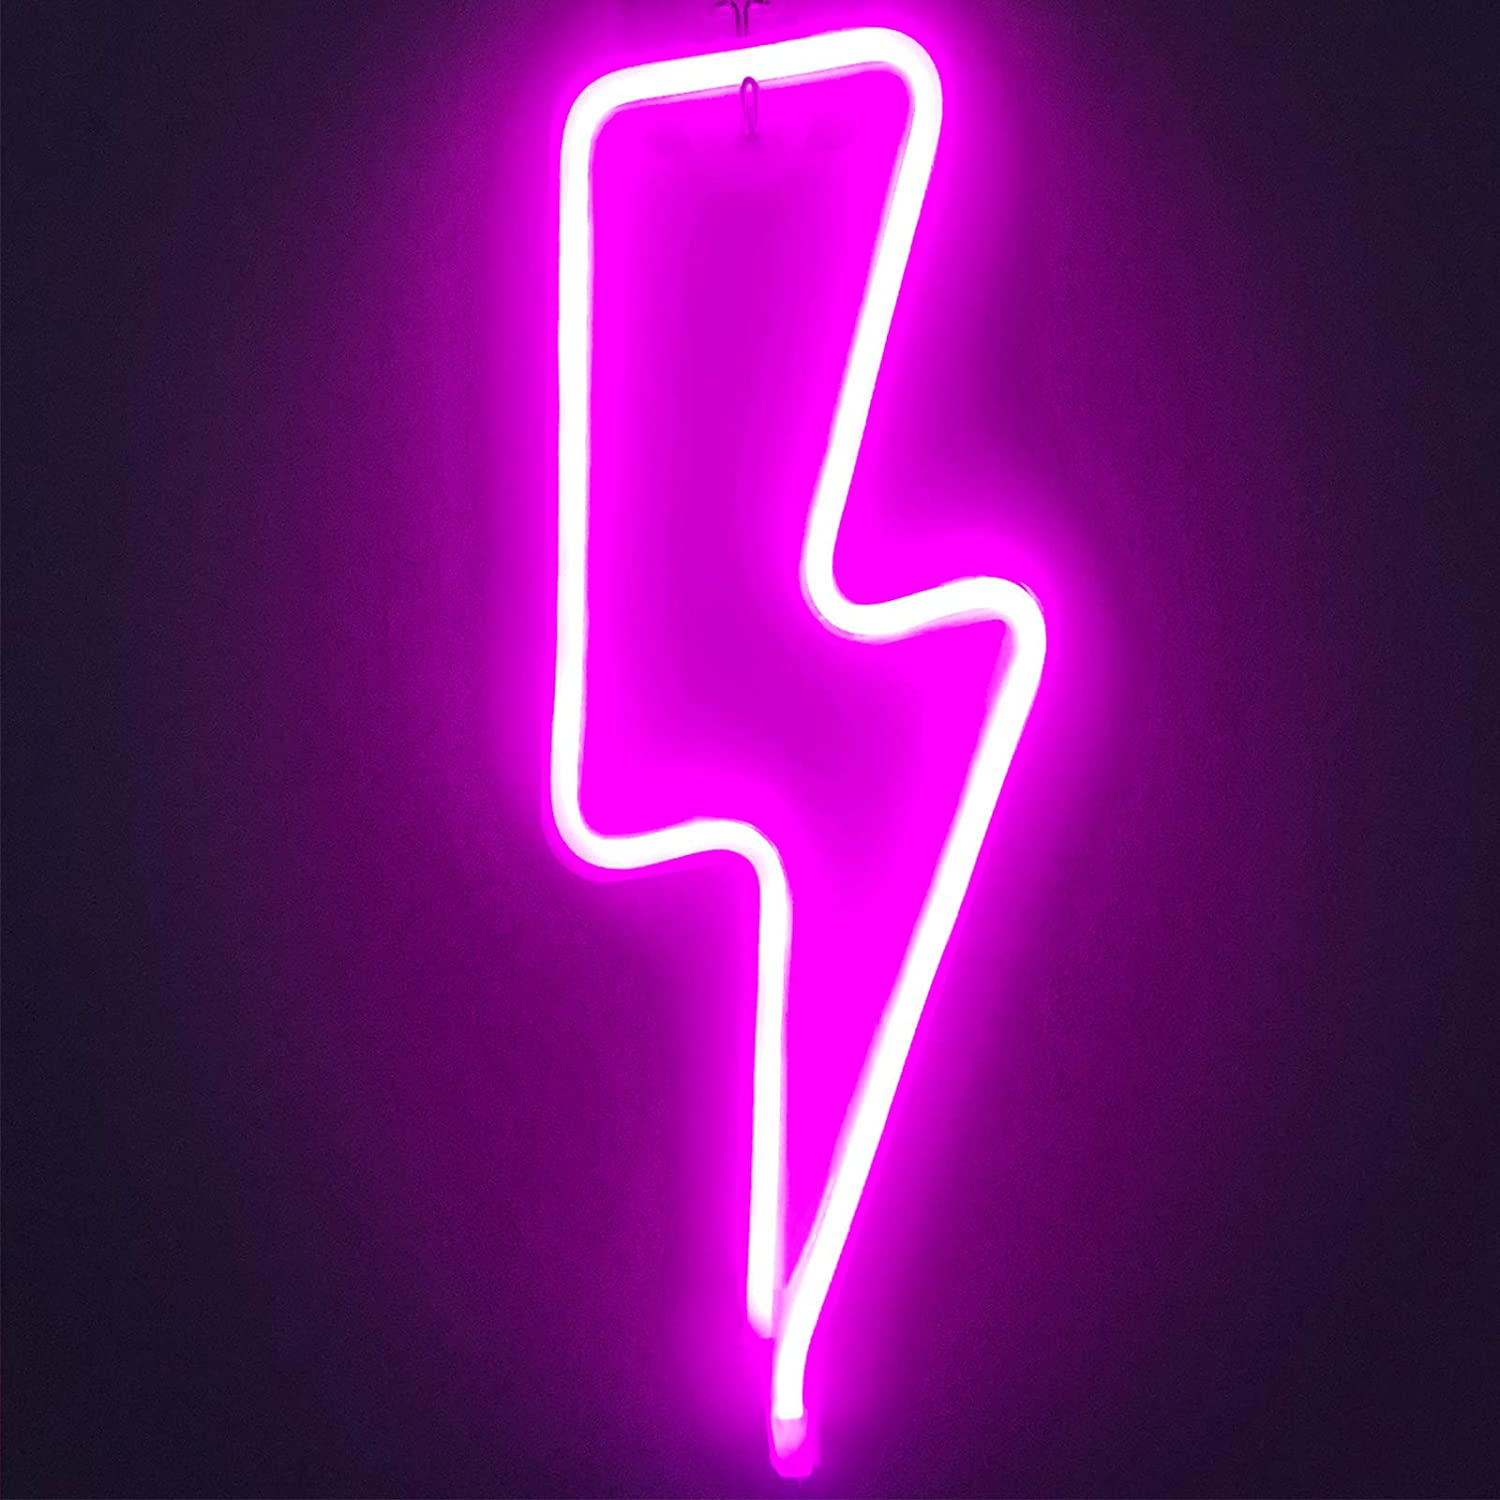 Protecu Pink Lightning Bolt Neon Signs, Decorative Lights Neon Signs for Bedroom, 3 AA Battery/USB Powered Neon Signs for Wall Decor, Kids, Birthday, Party, Christmas, New Year Home Decorations (Pink)